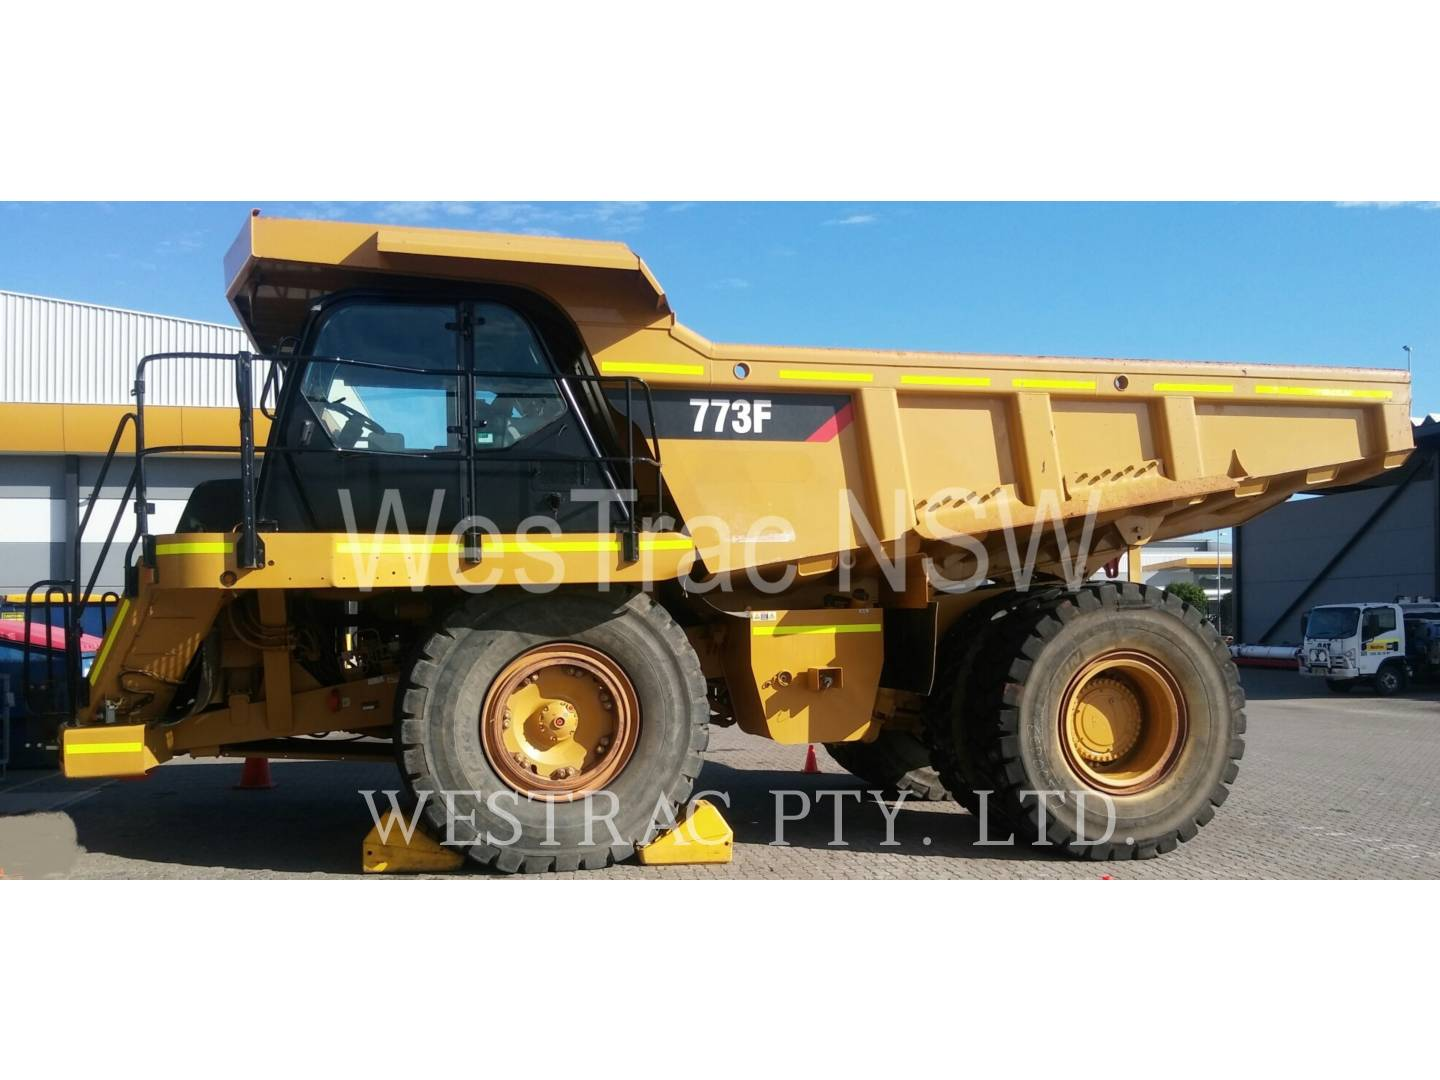 Used machinery cat used used equipment for sale westrac caterpillar 773f fandeluxe Images